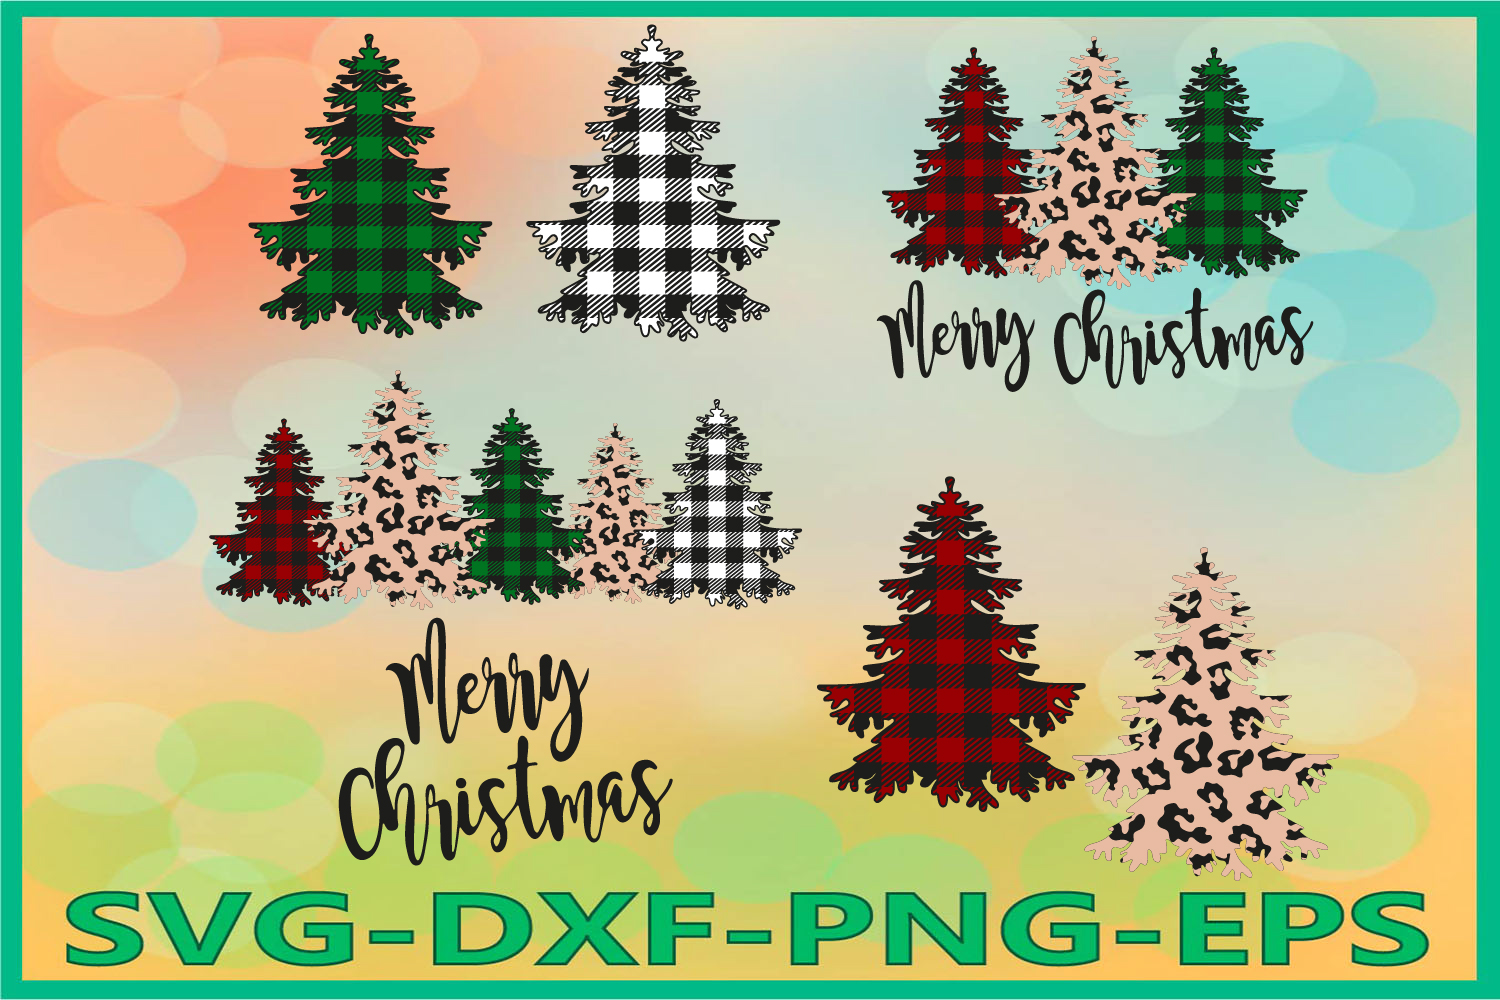 Sale Christmas Tree Svg Christmas Words Svg Dxf Png Pdf Eps Pin On Crafts To Try And Interesting Hobby Ideas